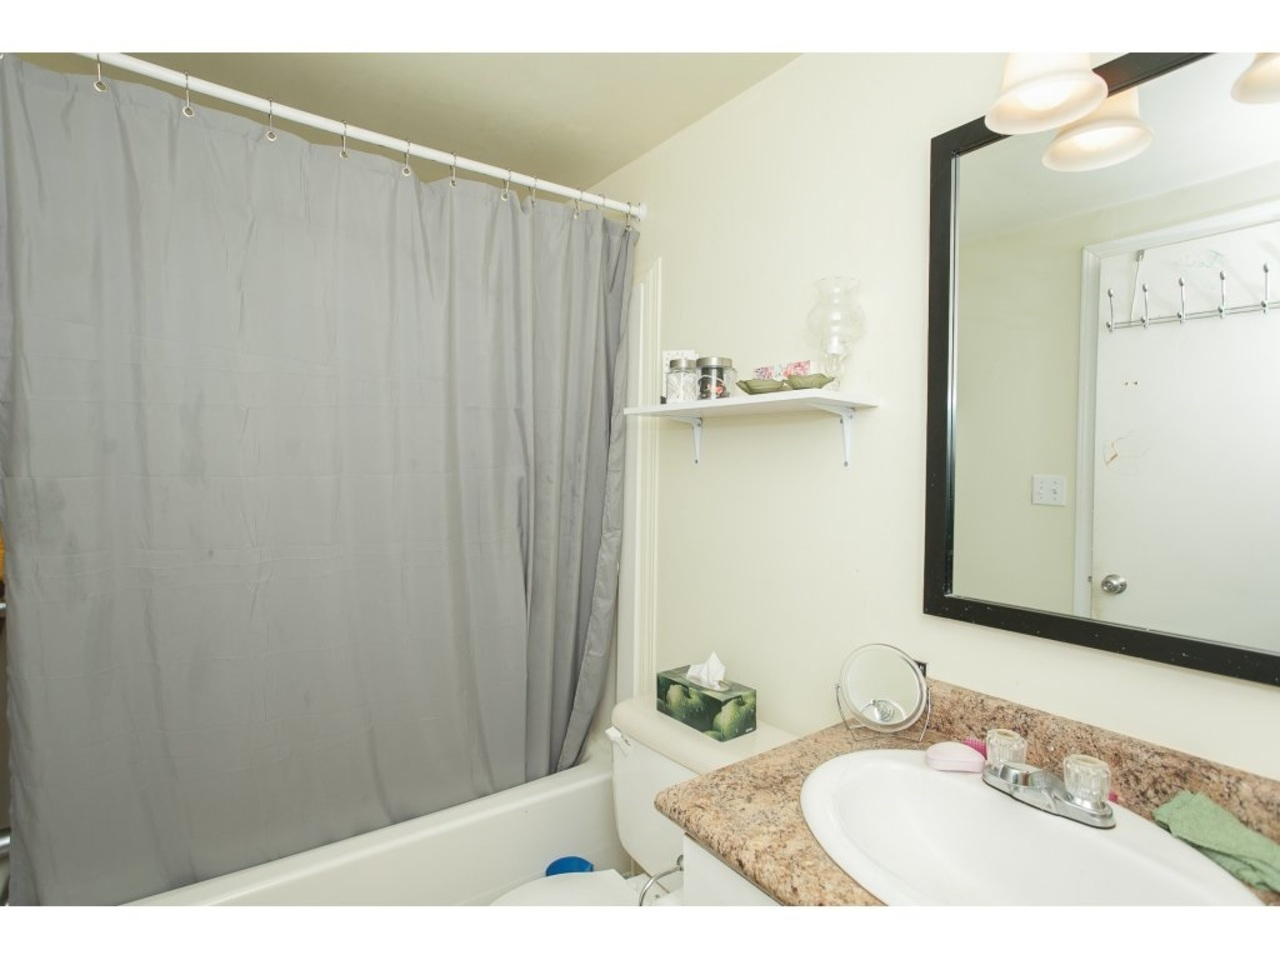 Bathroom -Listed by Solon REM, Top Langley & Fraser Valley Realtor  at 19943 Brydon, Langley City, Langley